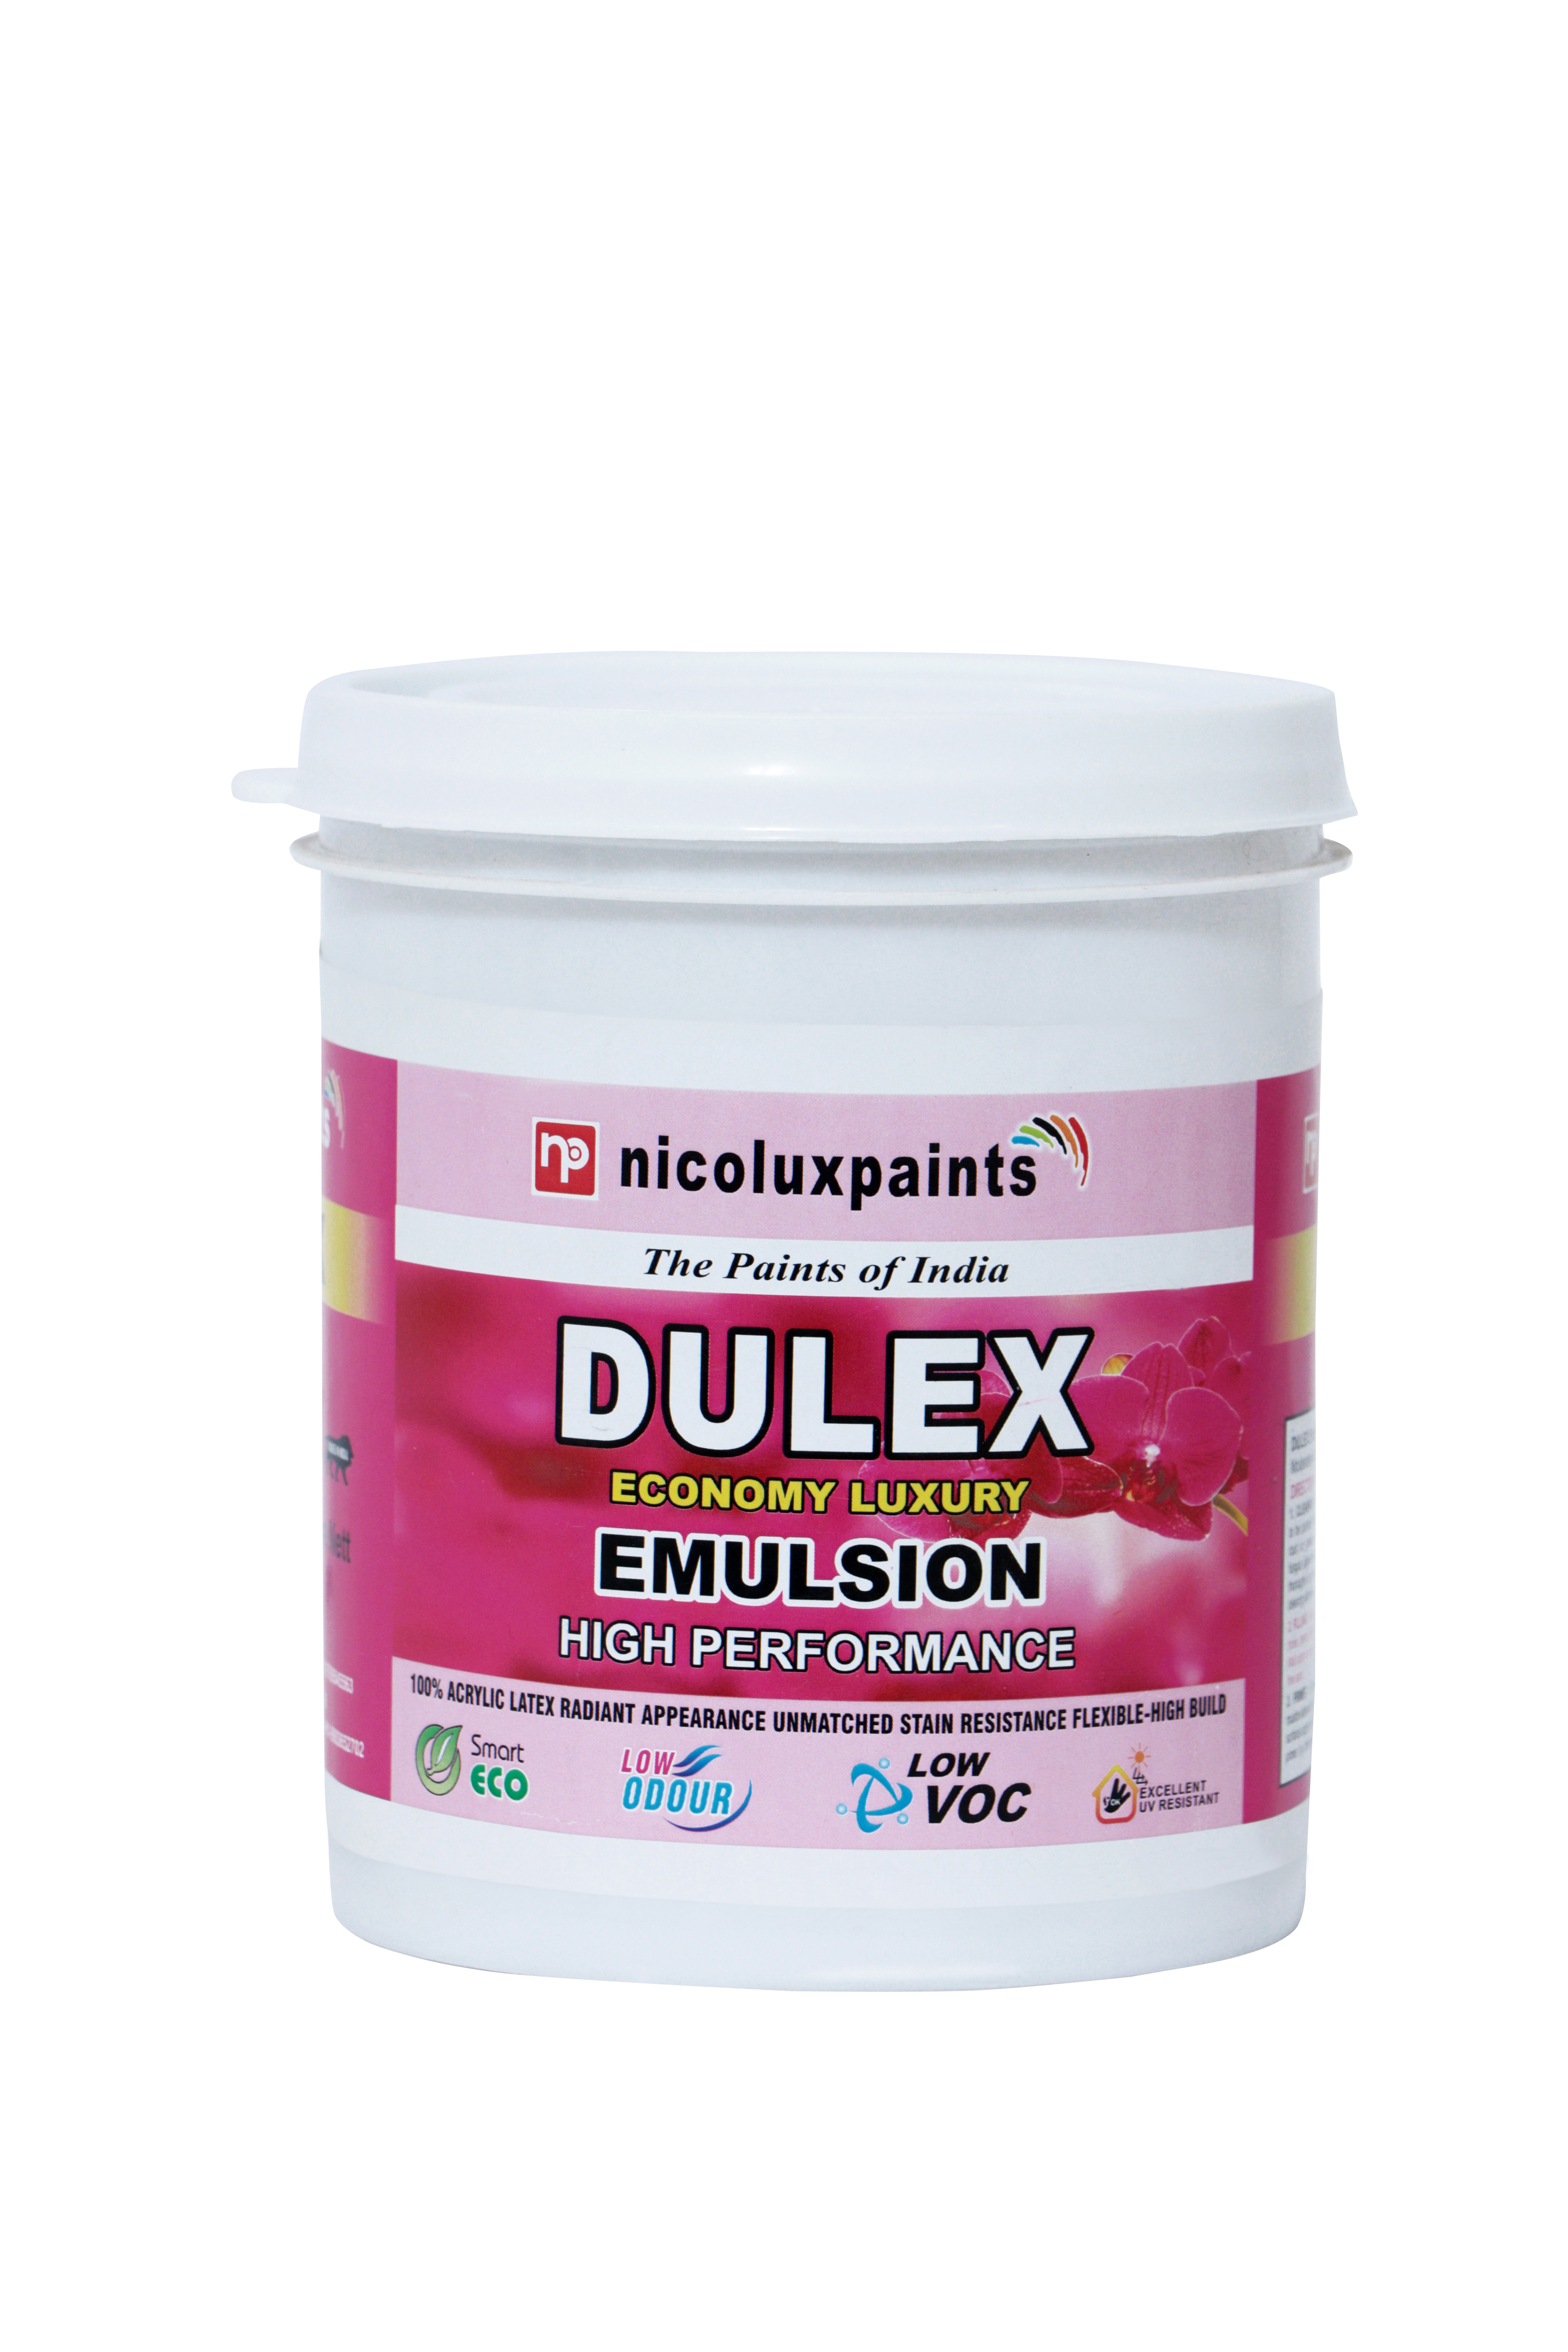 1Ltr Printed Paint Bucket